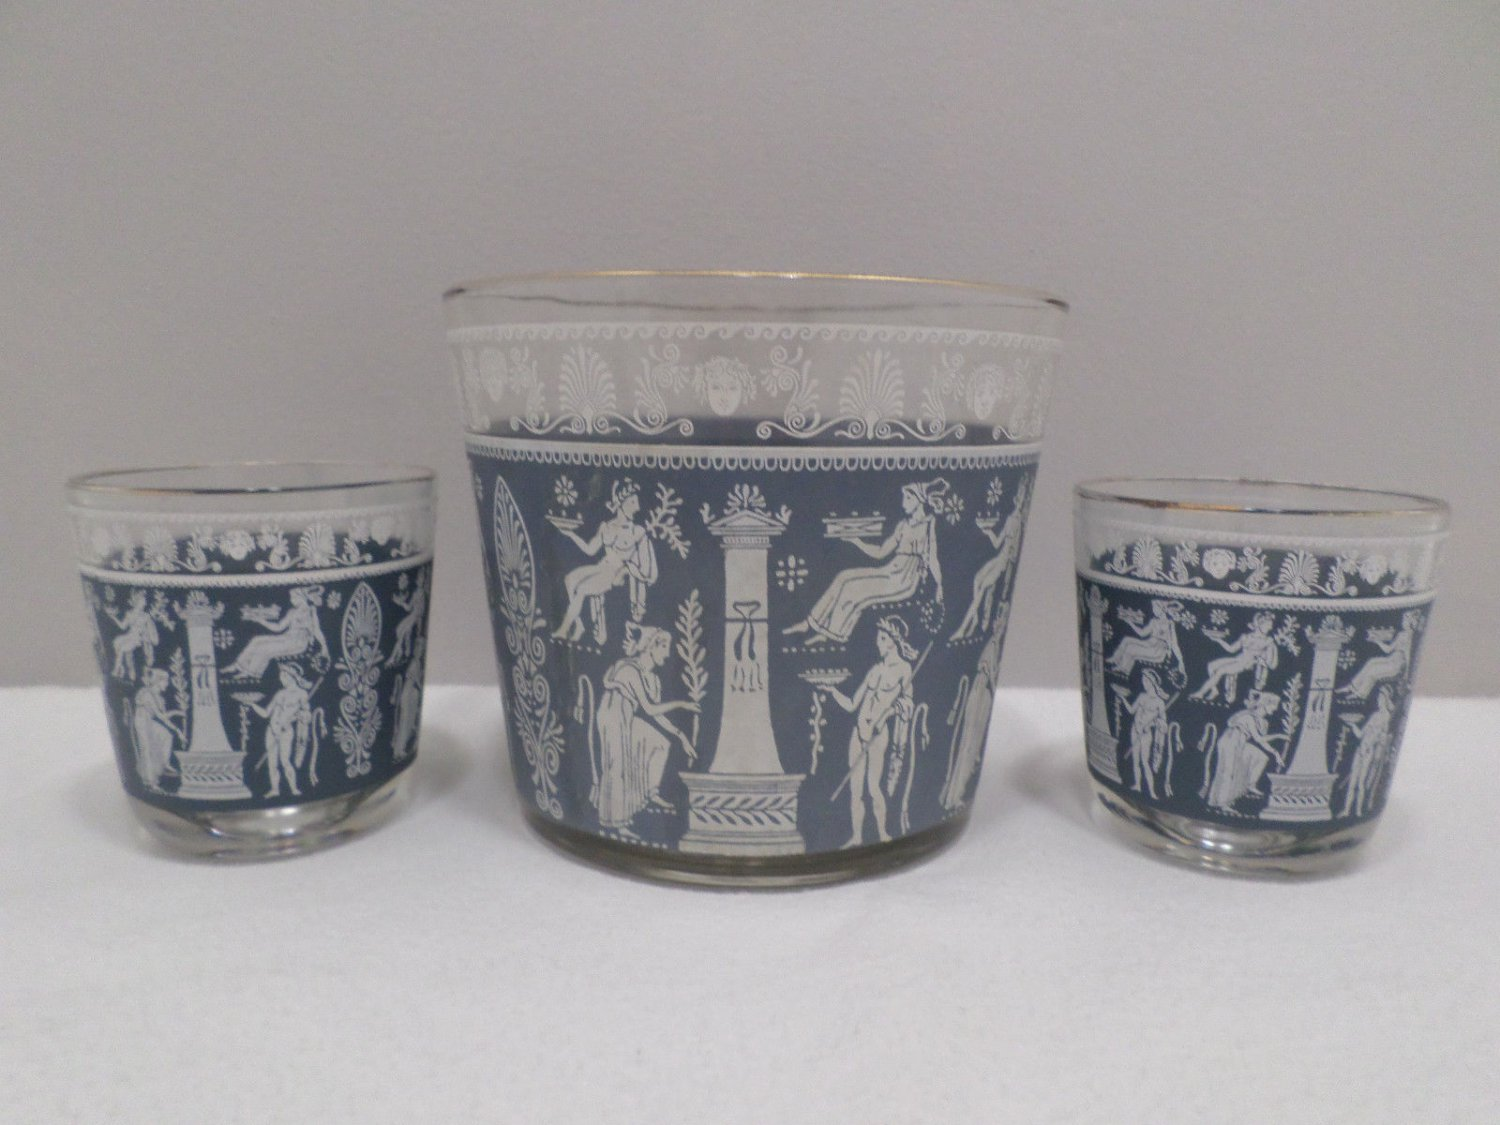 Vintage Ice Bucket with Two Glasses Blue and White Greek Jasperware Design